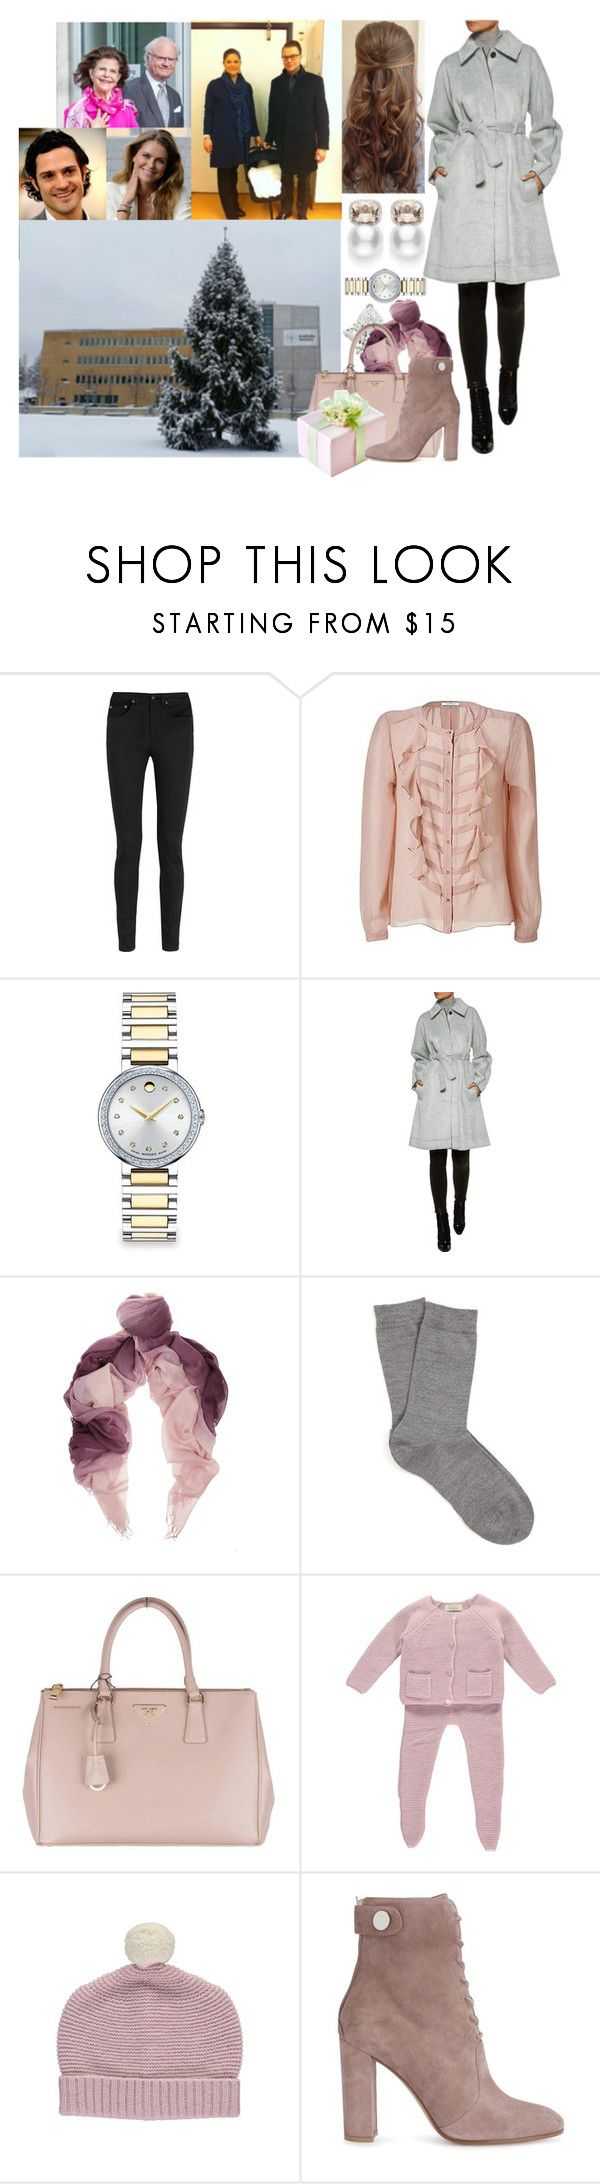 """""""Visiting her Newborn Niece and Goddaughter, Estelle, and Victoria + Daniel at Karolinska University Hospital with the Carl-Philip, Mamma, Pappa, and Madeleine"""" by louiseingrid-ofdenmark ❤ liked on Polyvore featuring Yves Saint Laurent, By Malene Birger, Mikimoto, Movado, Marissa Webb, Falke, Prada and Gianvito Rossi"""